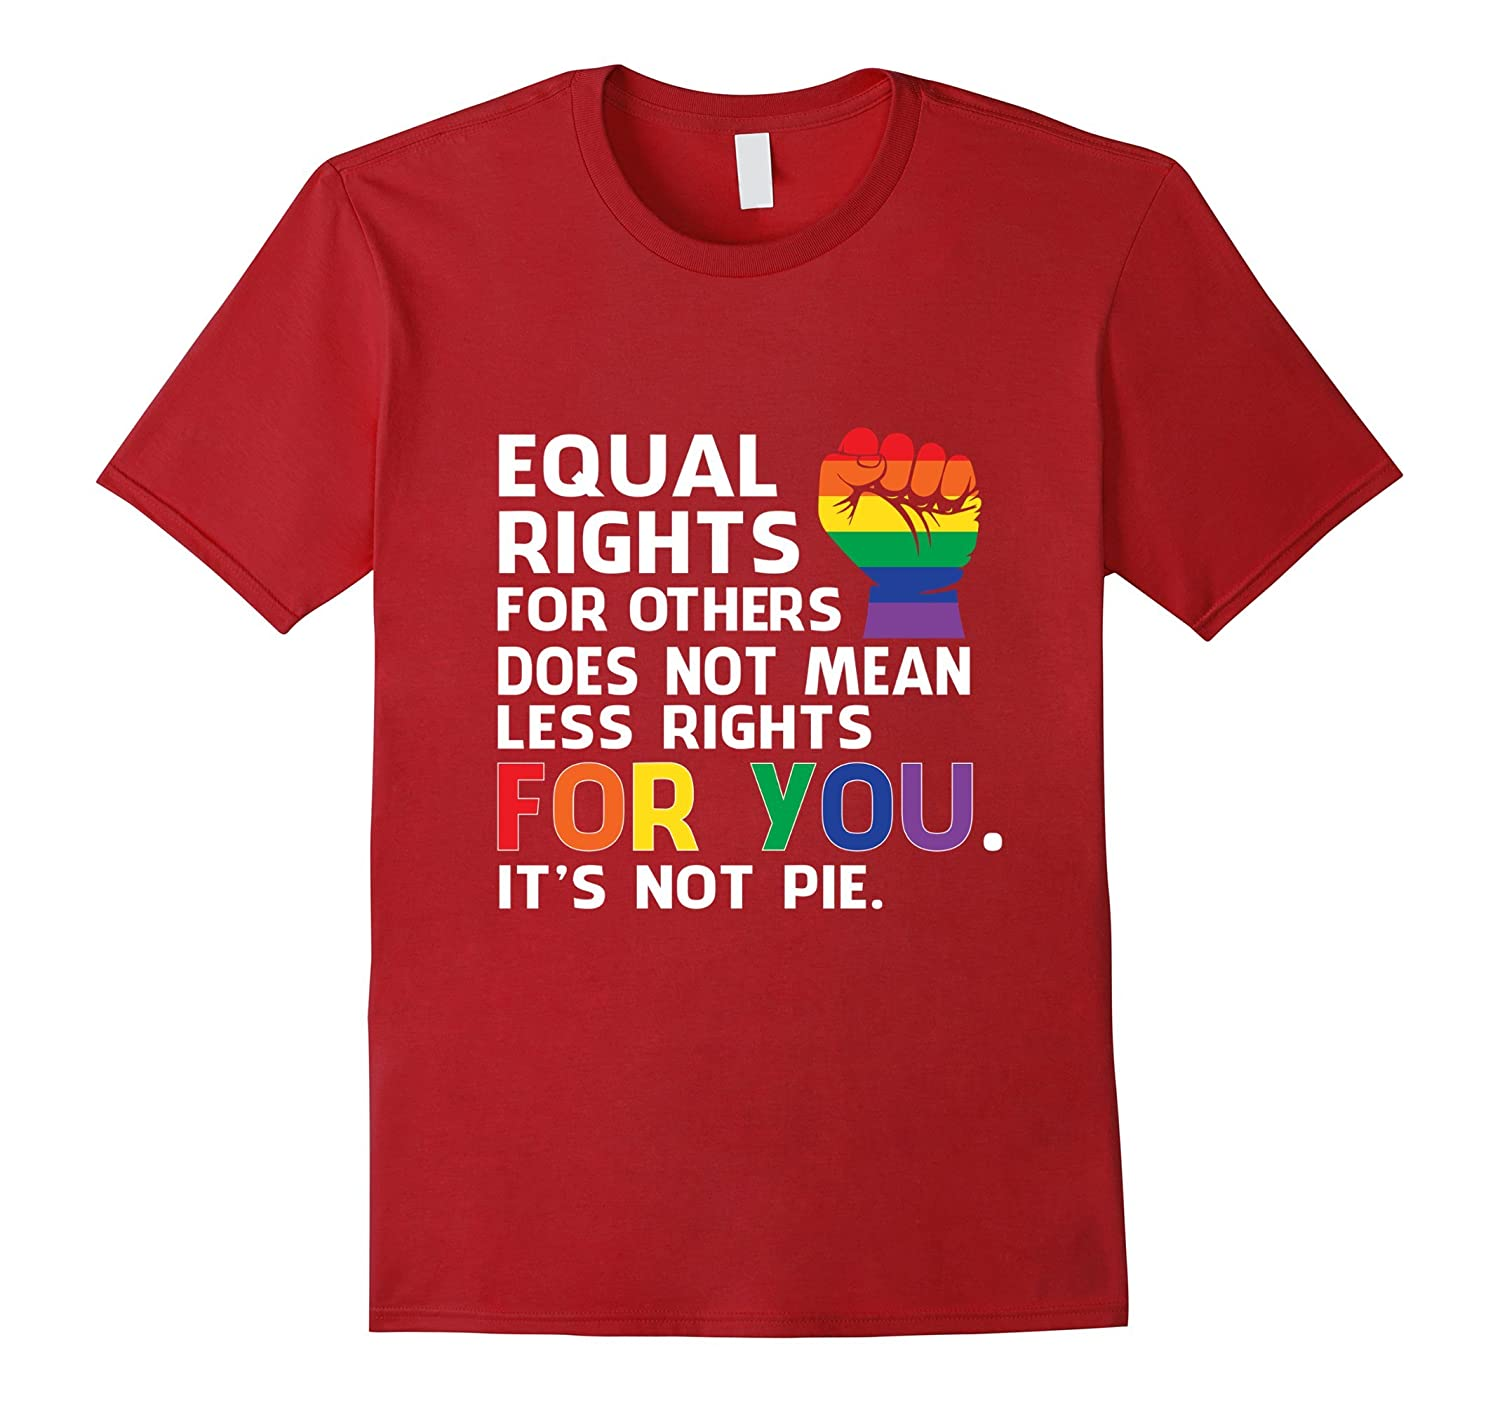 Equal Rights For Others Does Not Mean Less Rights T-Shirt